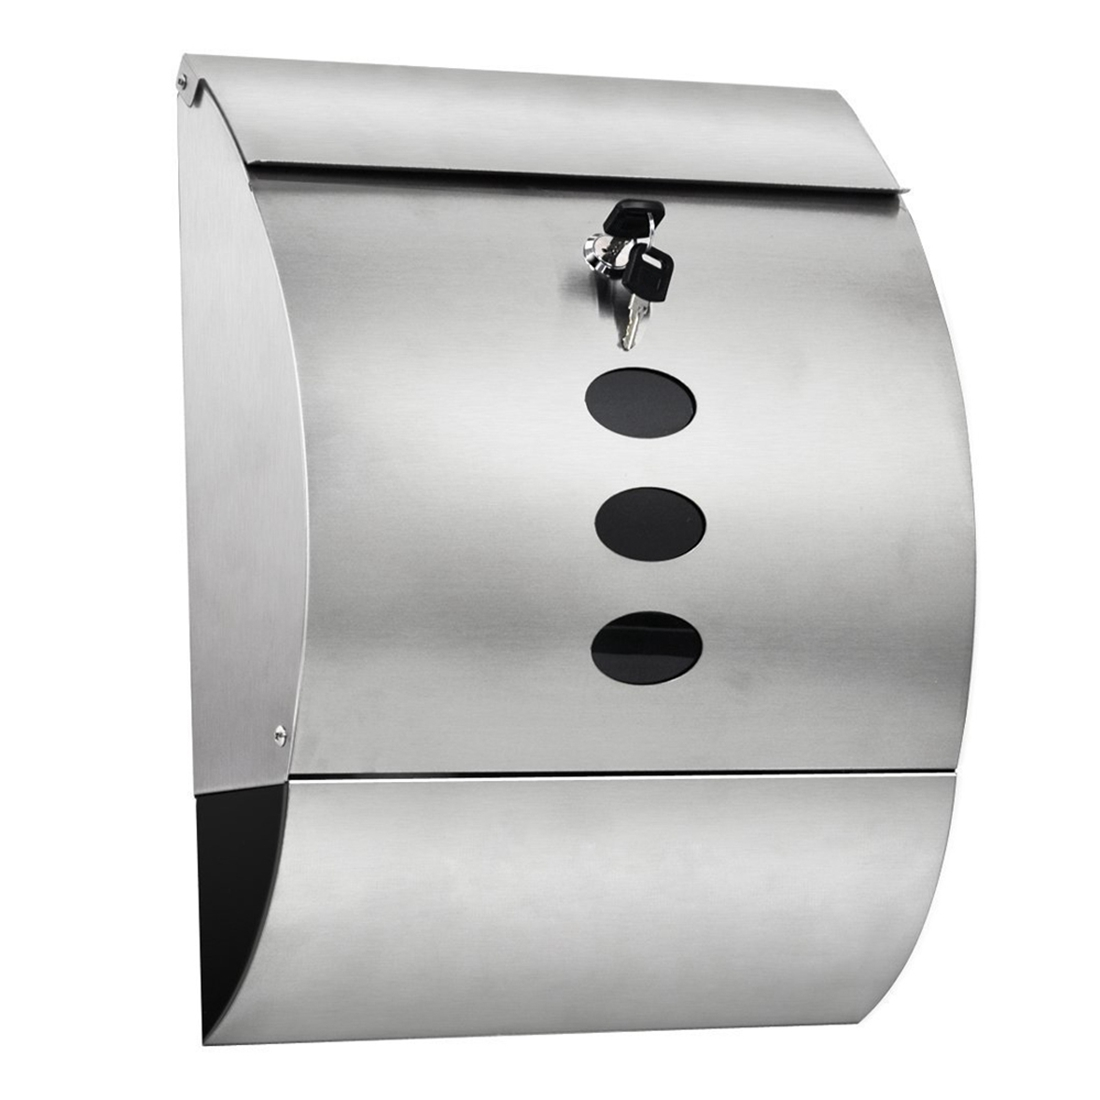 waterproof stainless steel lockable mailbox u0026 newspaper holder outdoor box silver - Lockable Mailbox